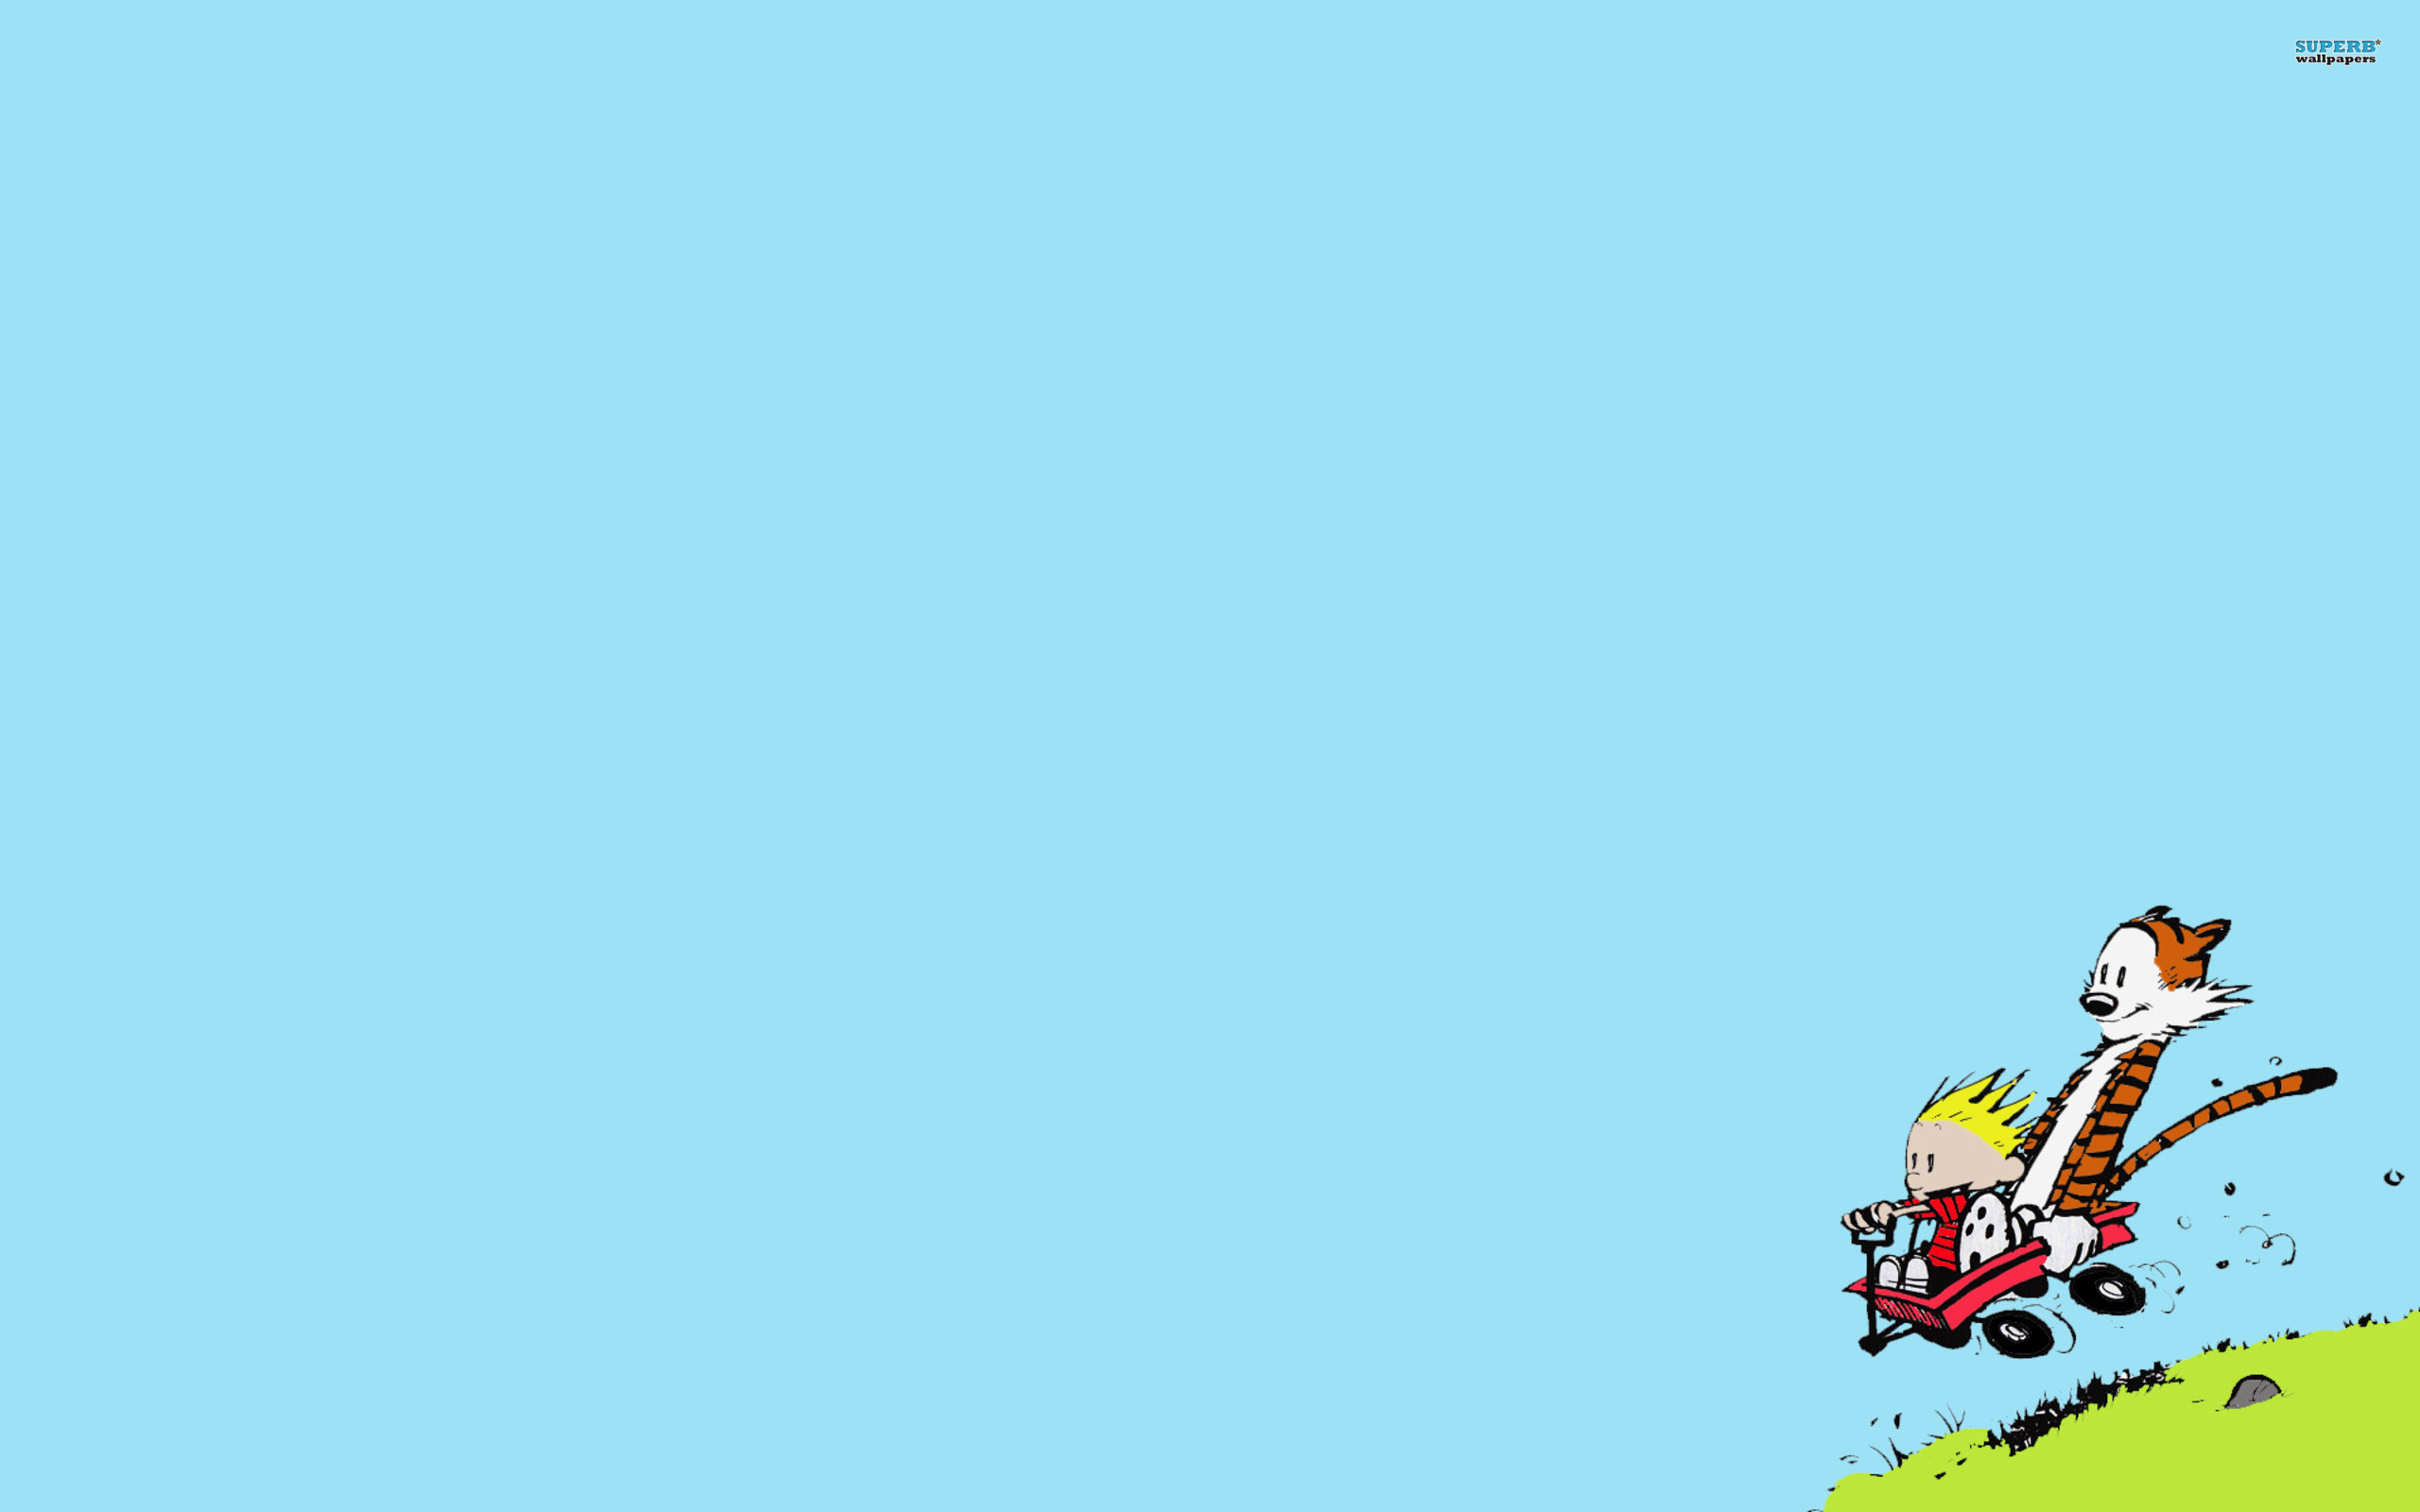 iphone 5 wallpaper calvin and hobbes   Favourite Pictures 2560x1600